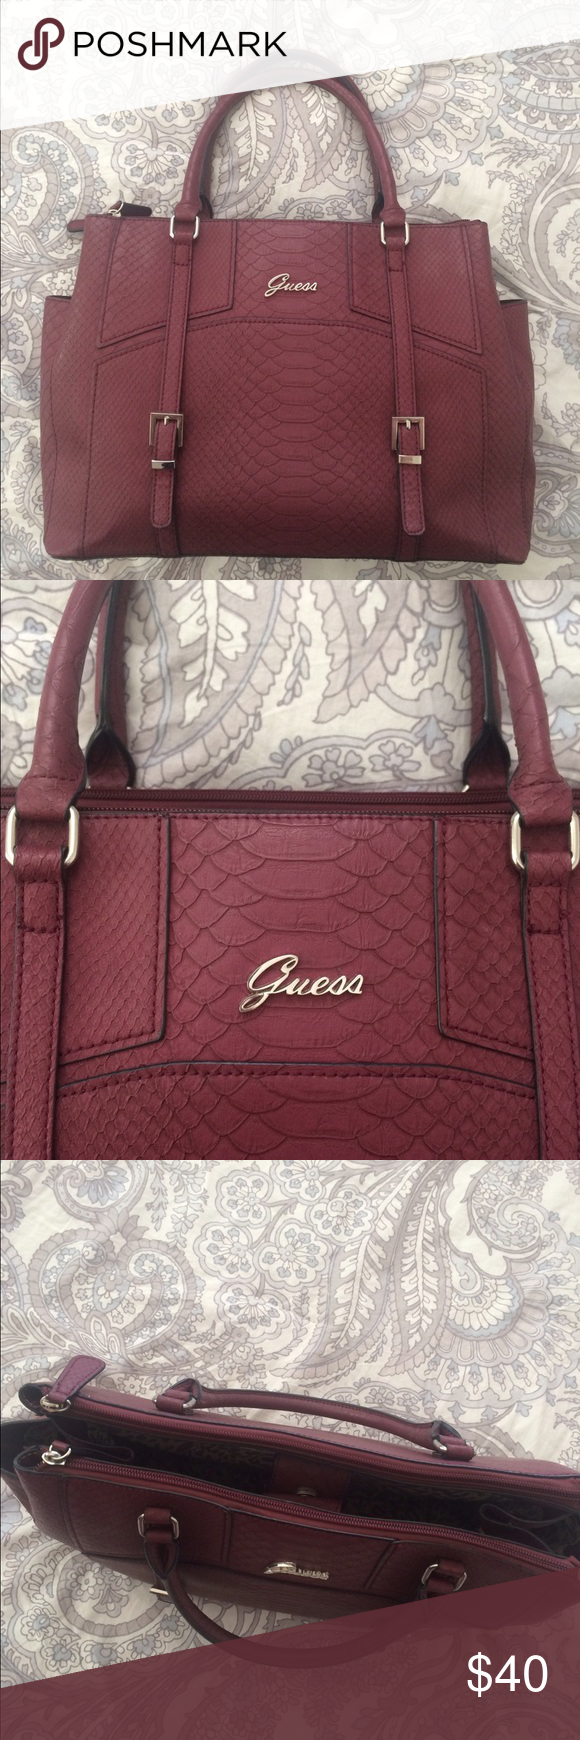 Burgundy Guess purse Guess handbag. Burgundy plum color. Snakeskin texture.  Inside is leopard print. No flaws. Only used once! Guess Bags Totes bae94613ec45d